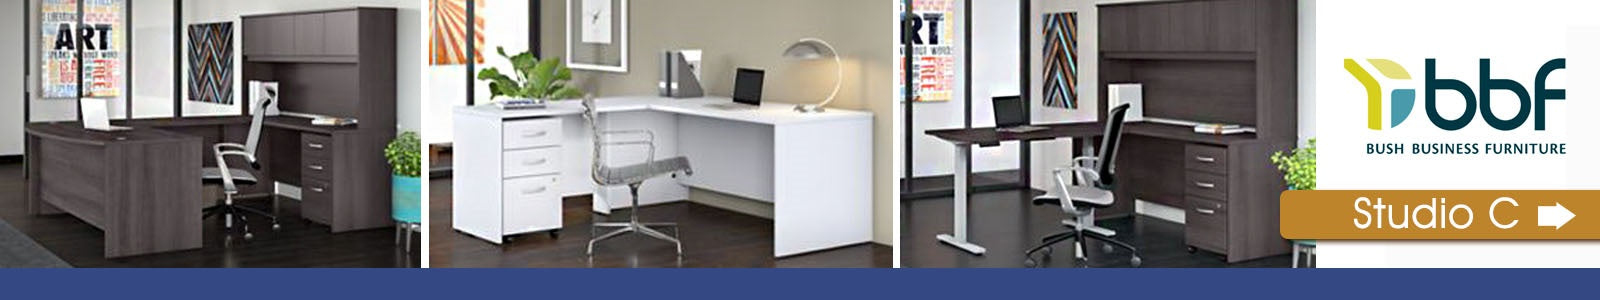 Bush Business Furniture Studio C Banner Image